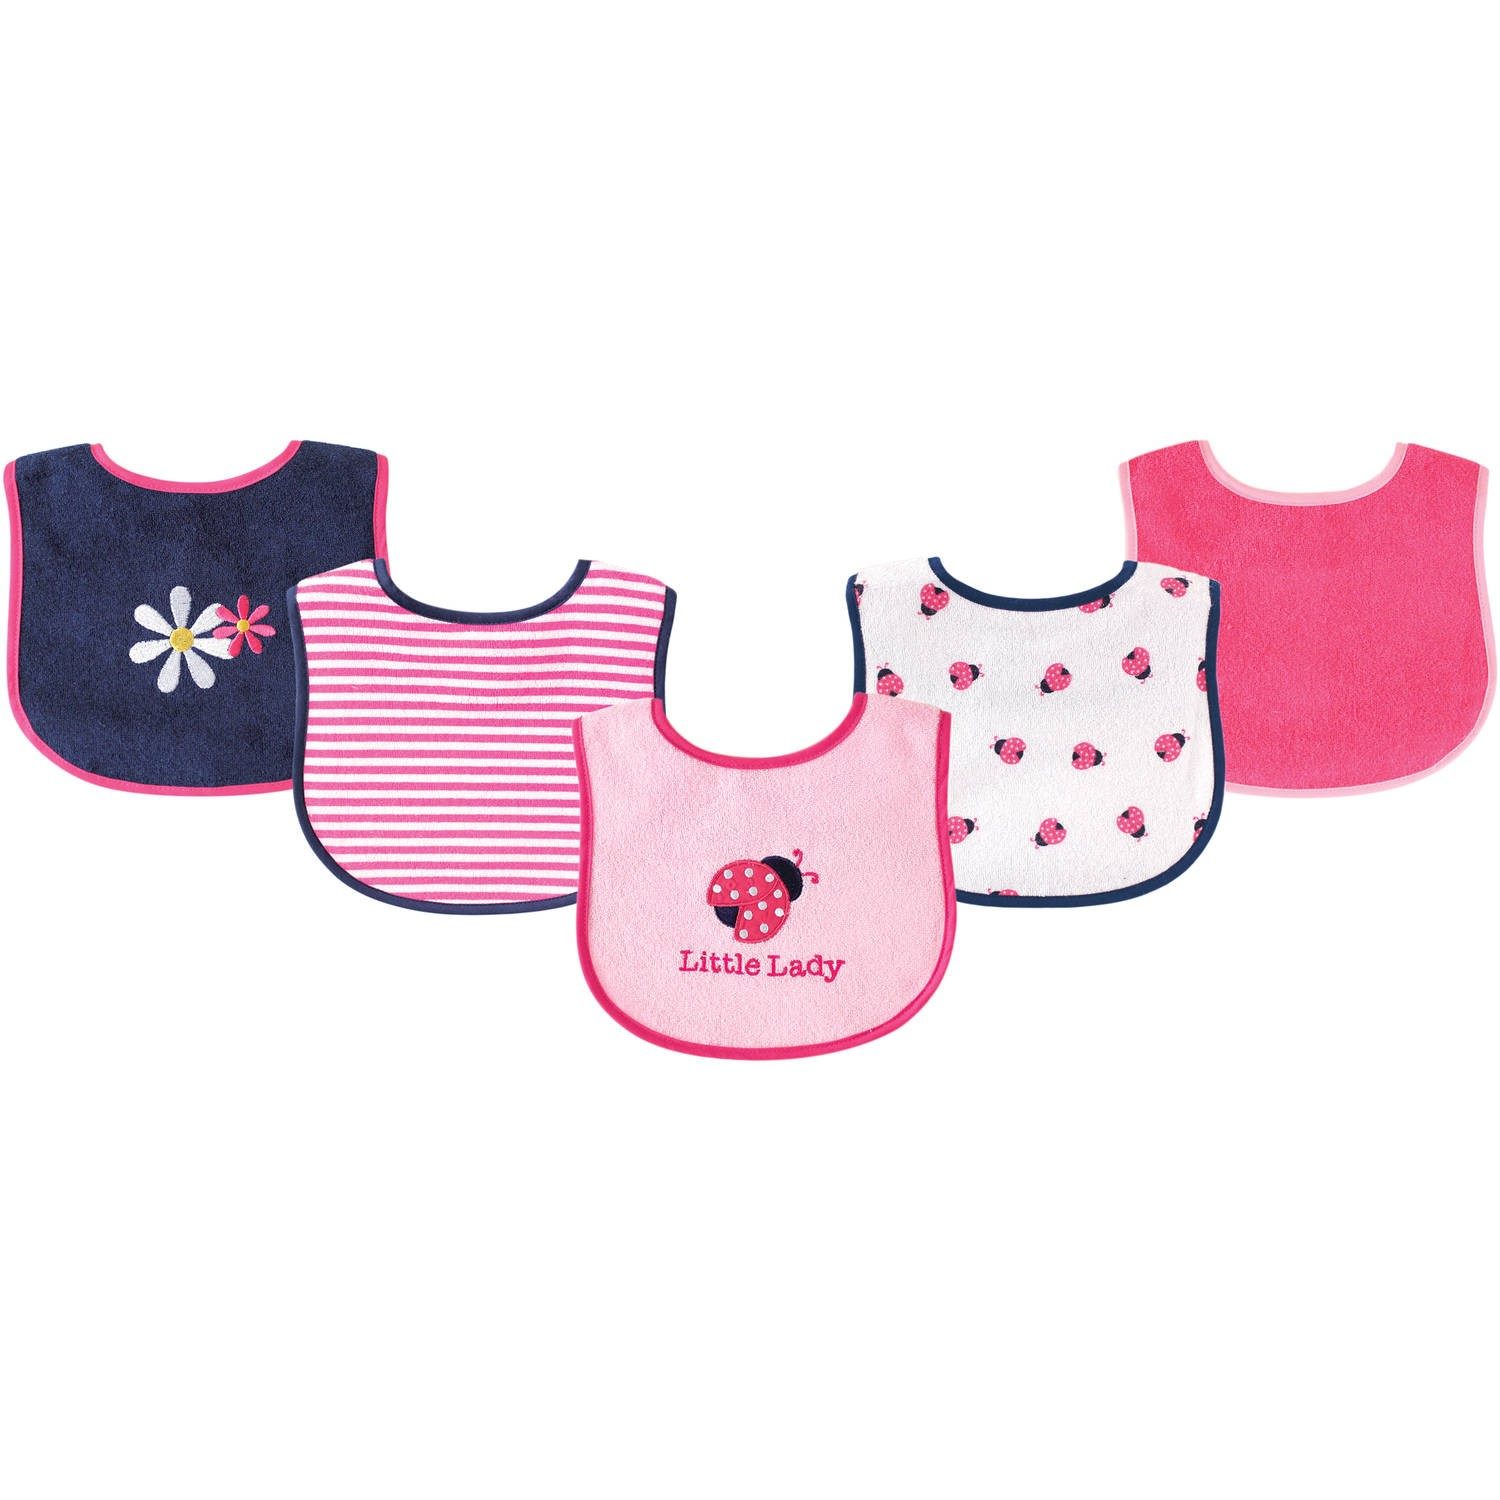 6 x 7.5 Yellow//Gray 10 Count Luvable Friends Baby Bibs Value Pack